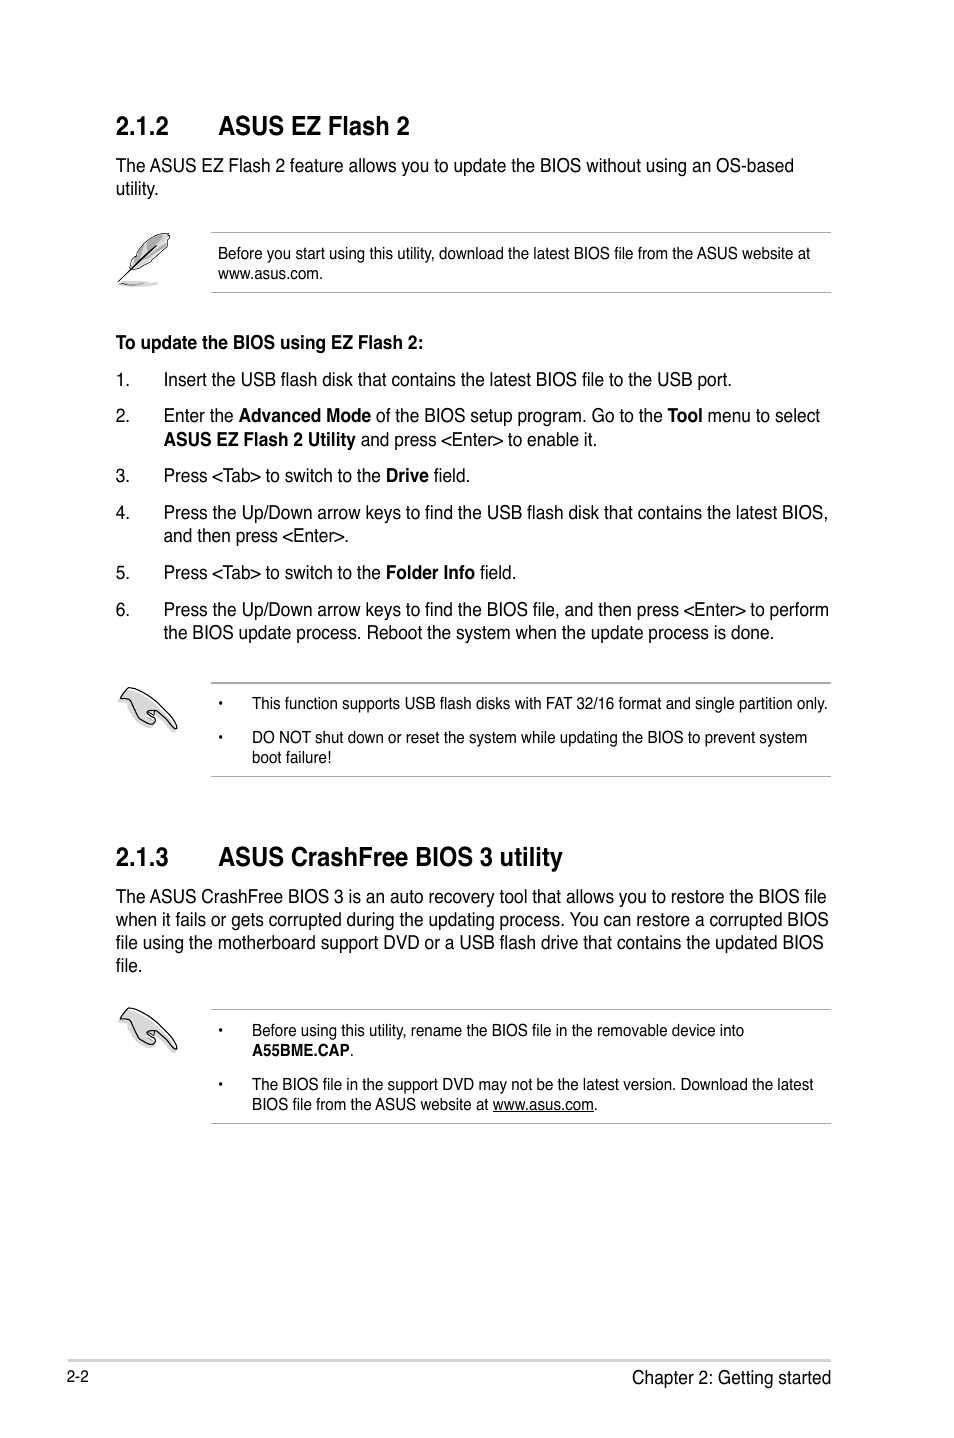 asus easy flash utility recovery